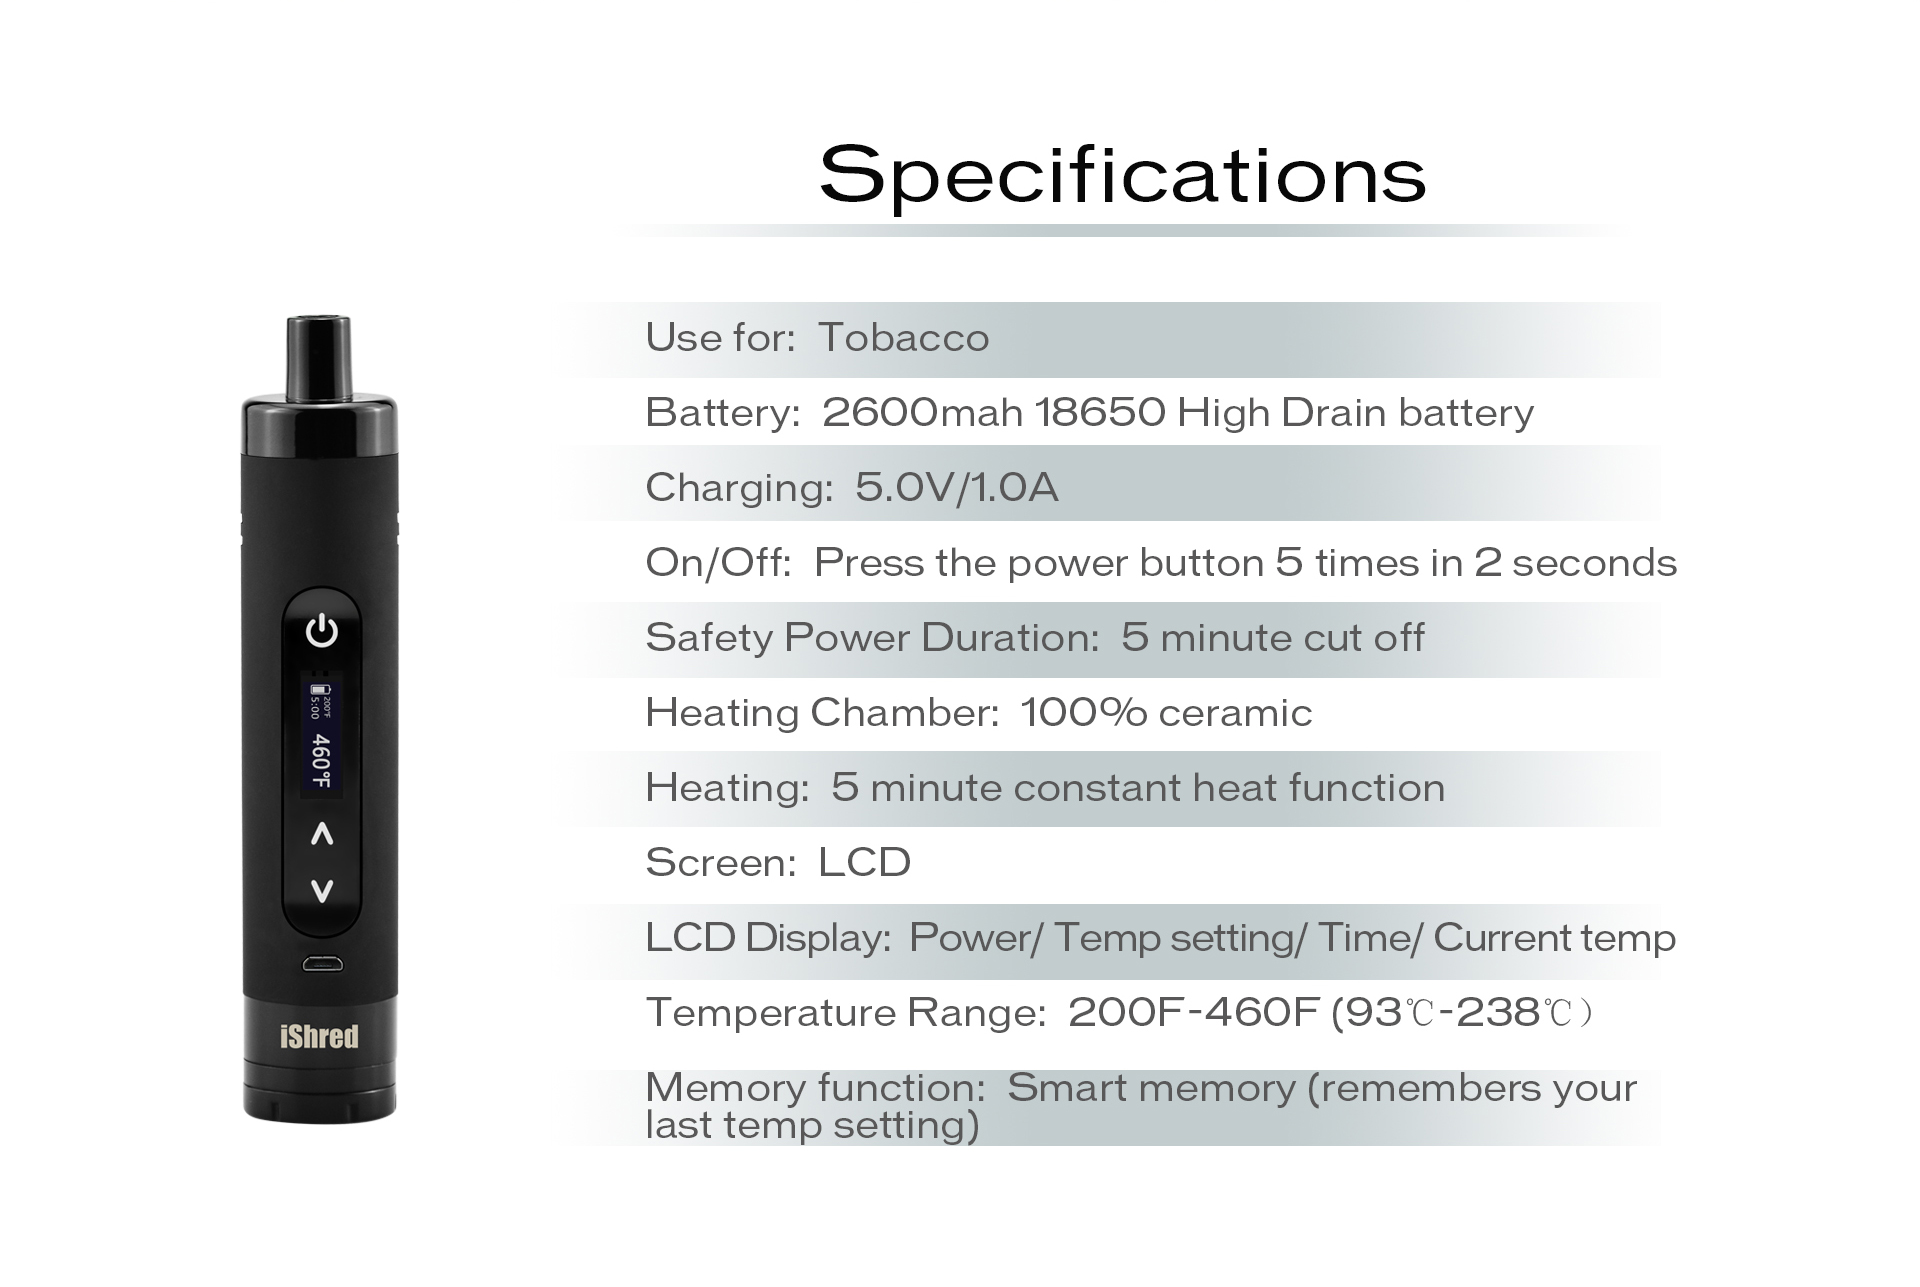 Yocan iShred Specifications